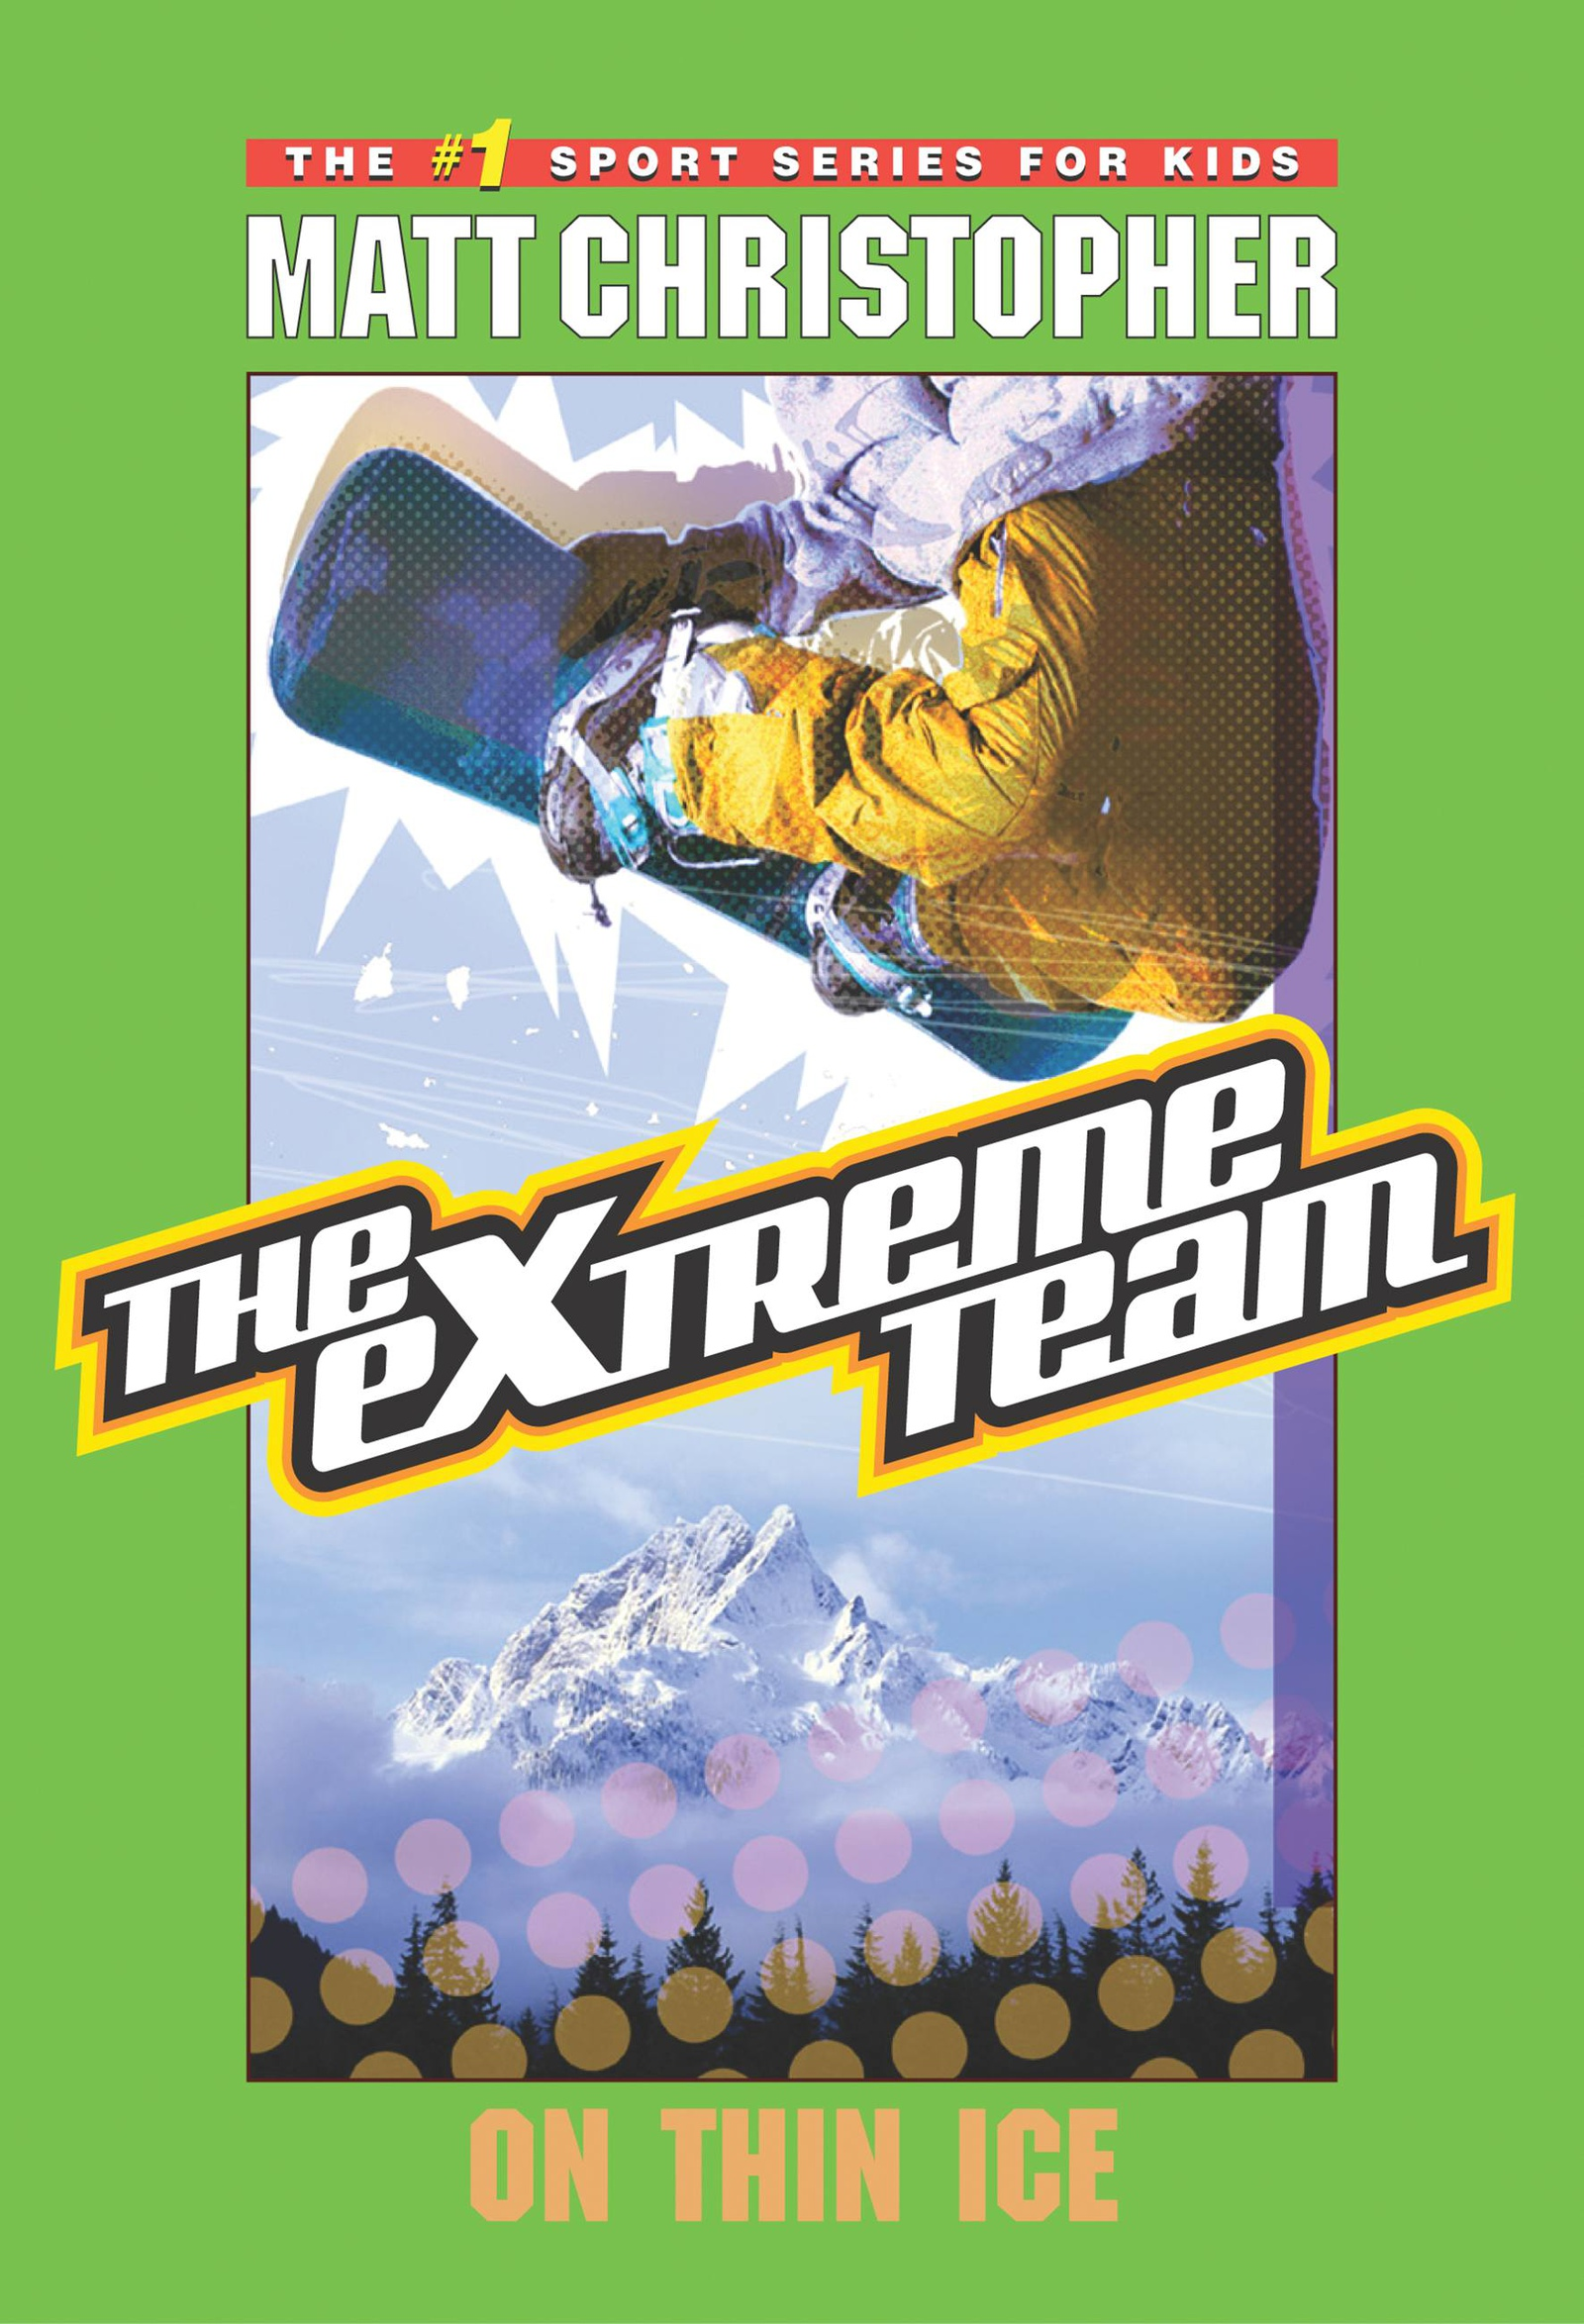 The Extreme Team #4